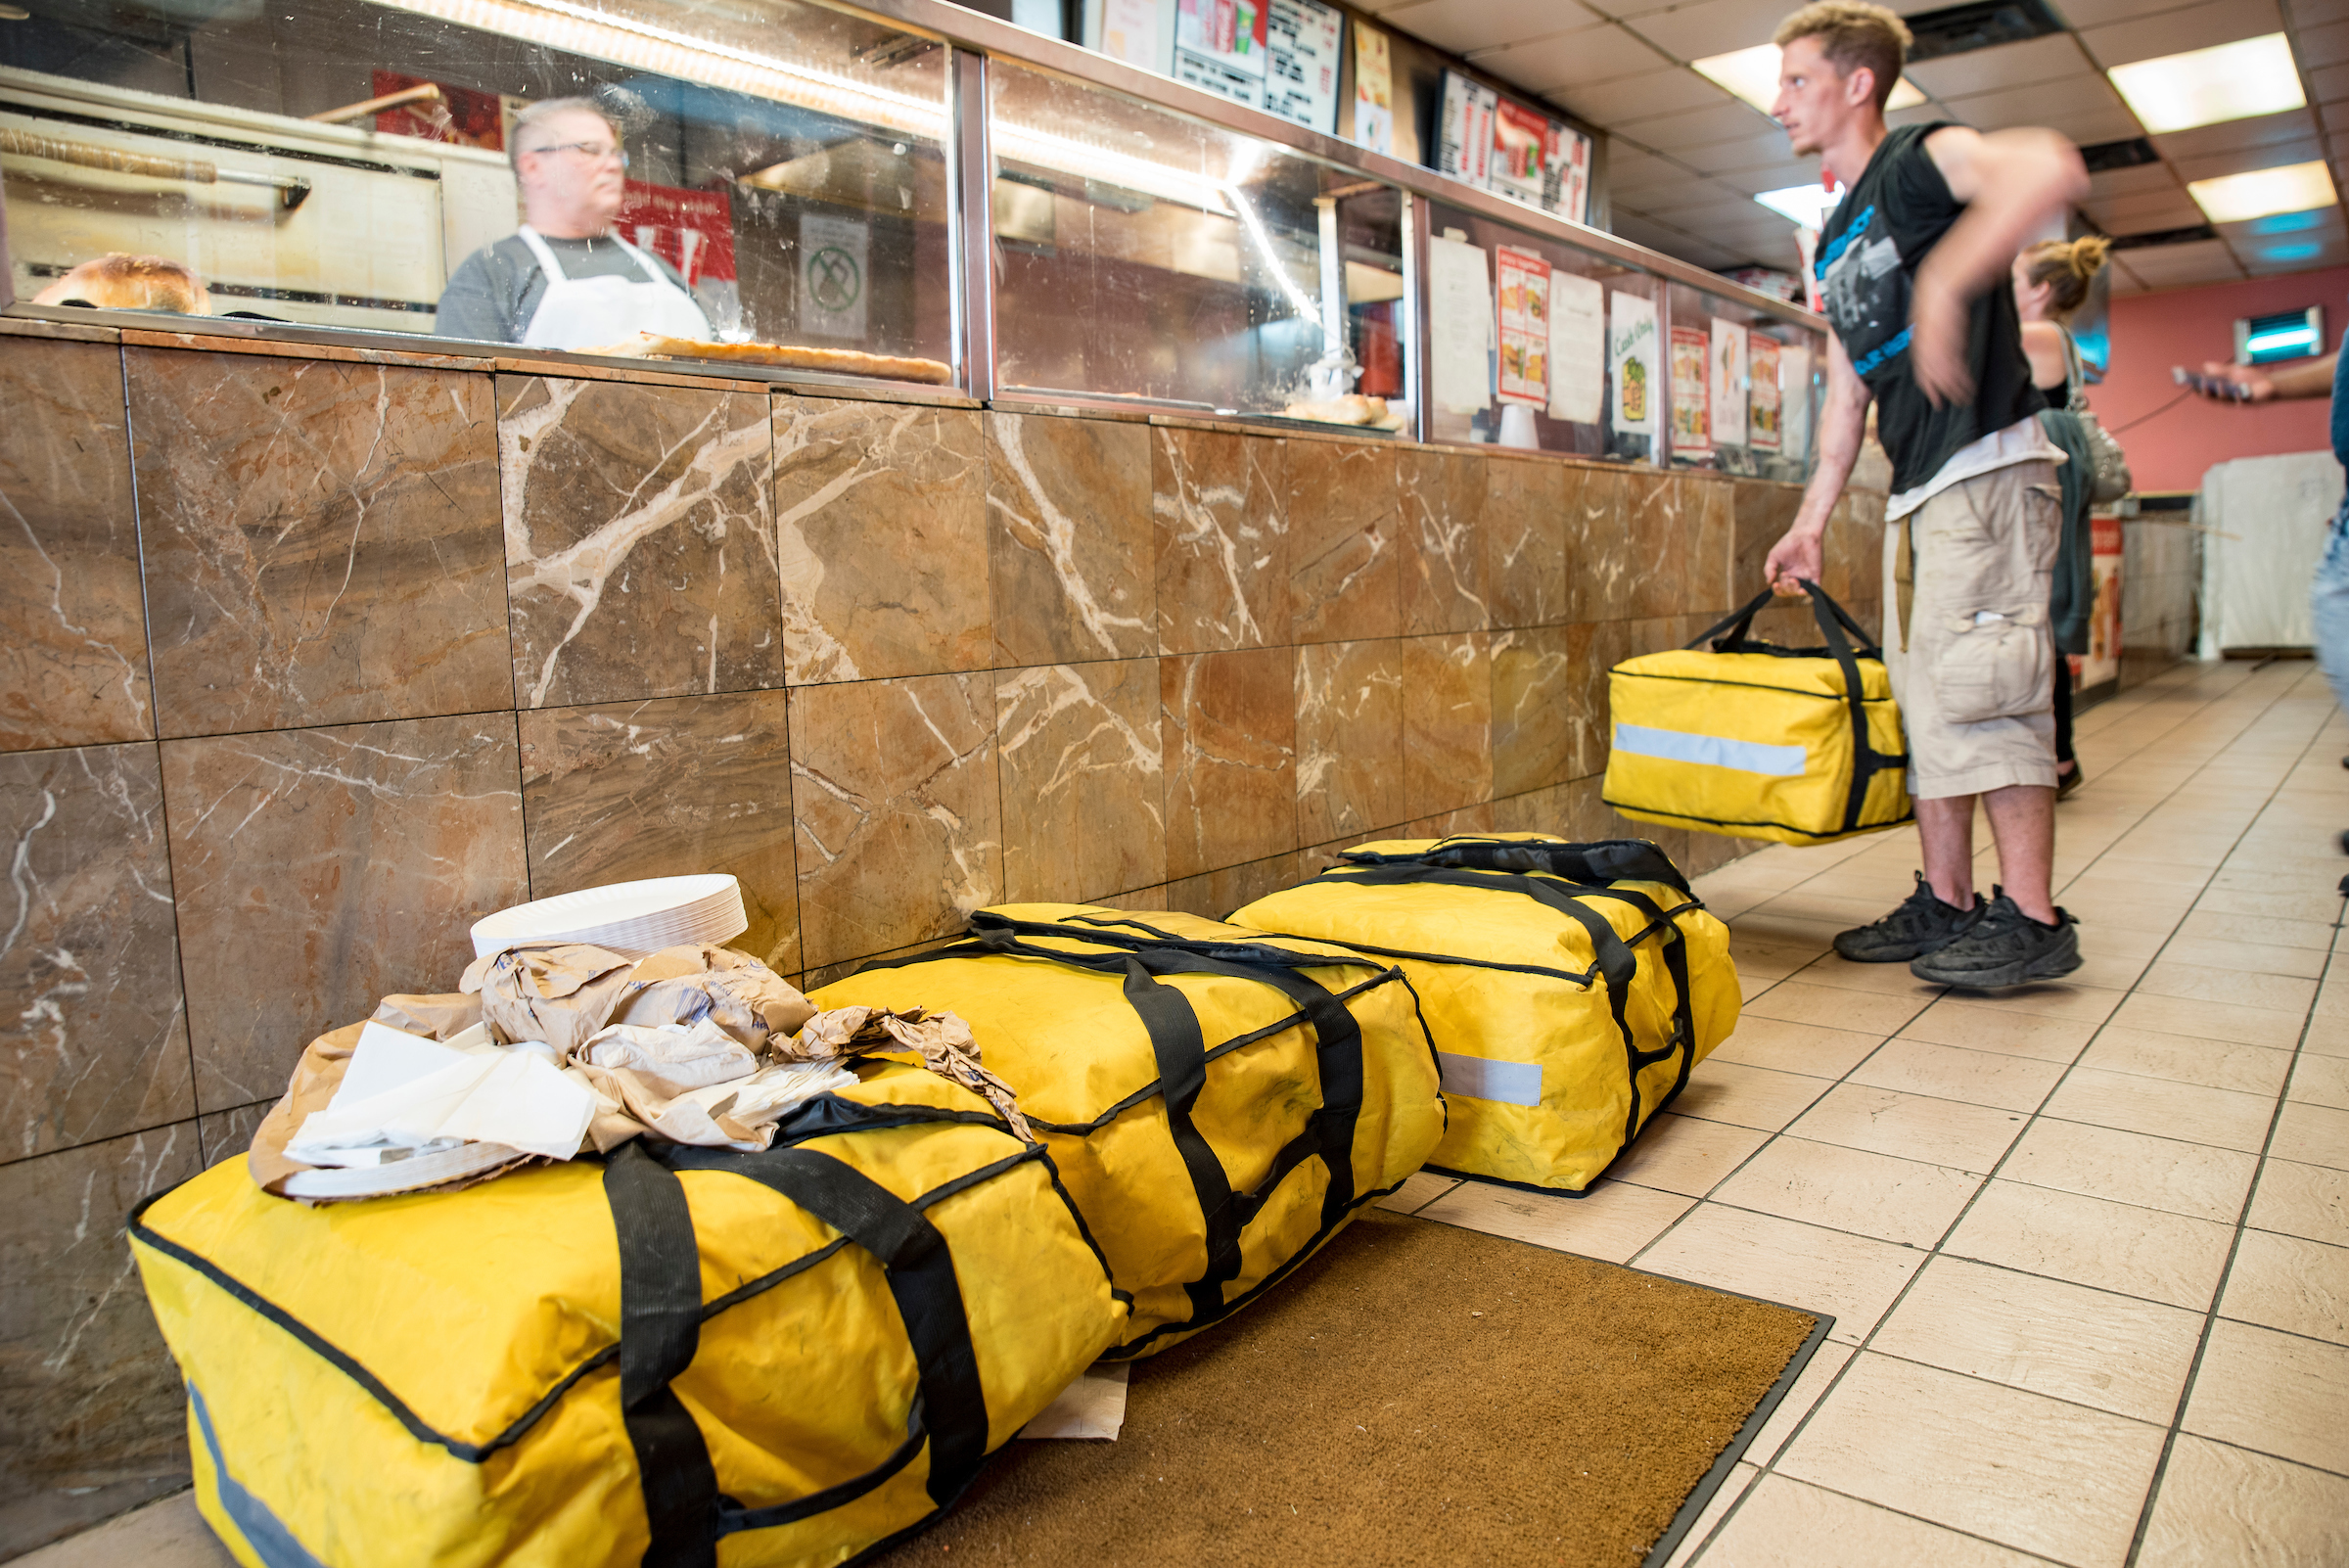 A PMA Bike Ride volunteer picks up one of many carry-bags of pizza from Four Sons Pizza in Kensington, Philadelphia.